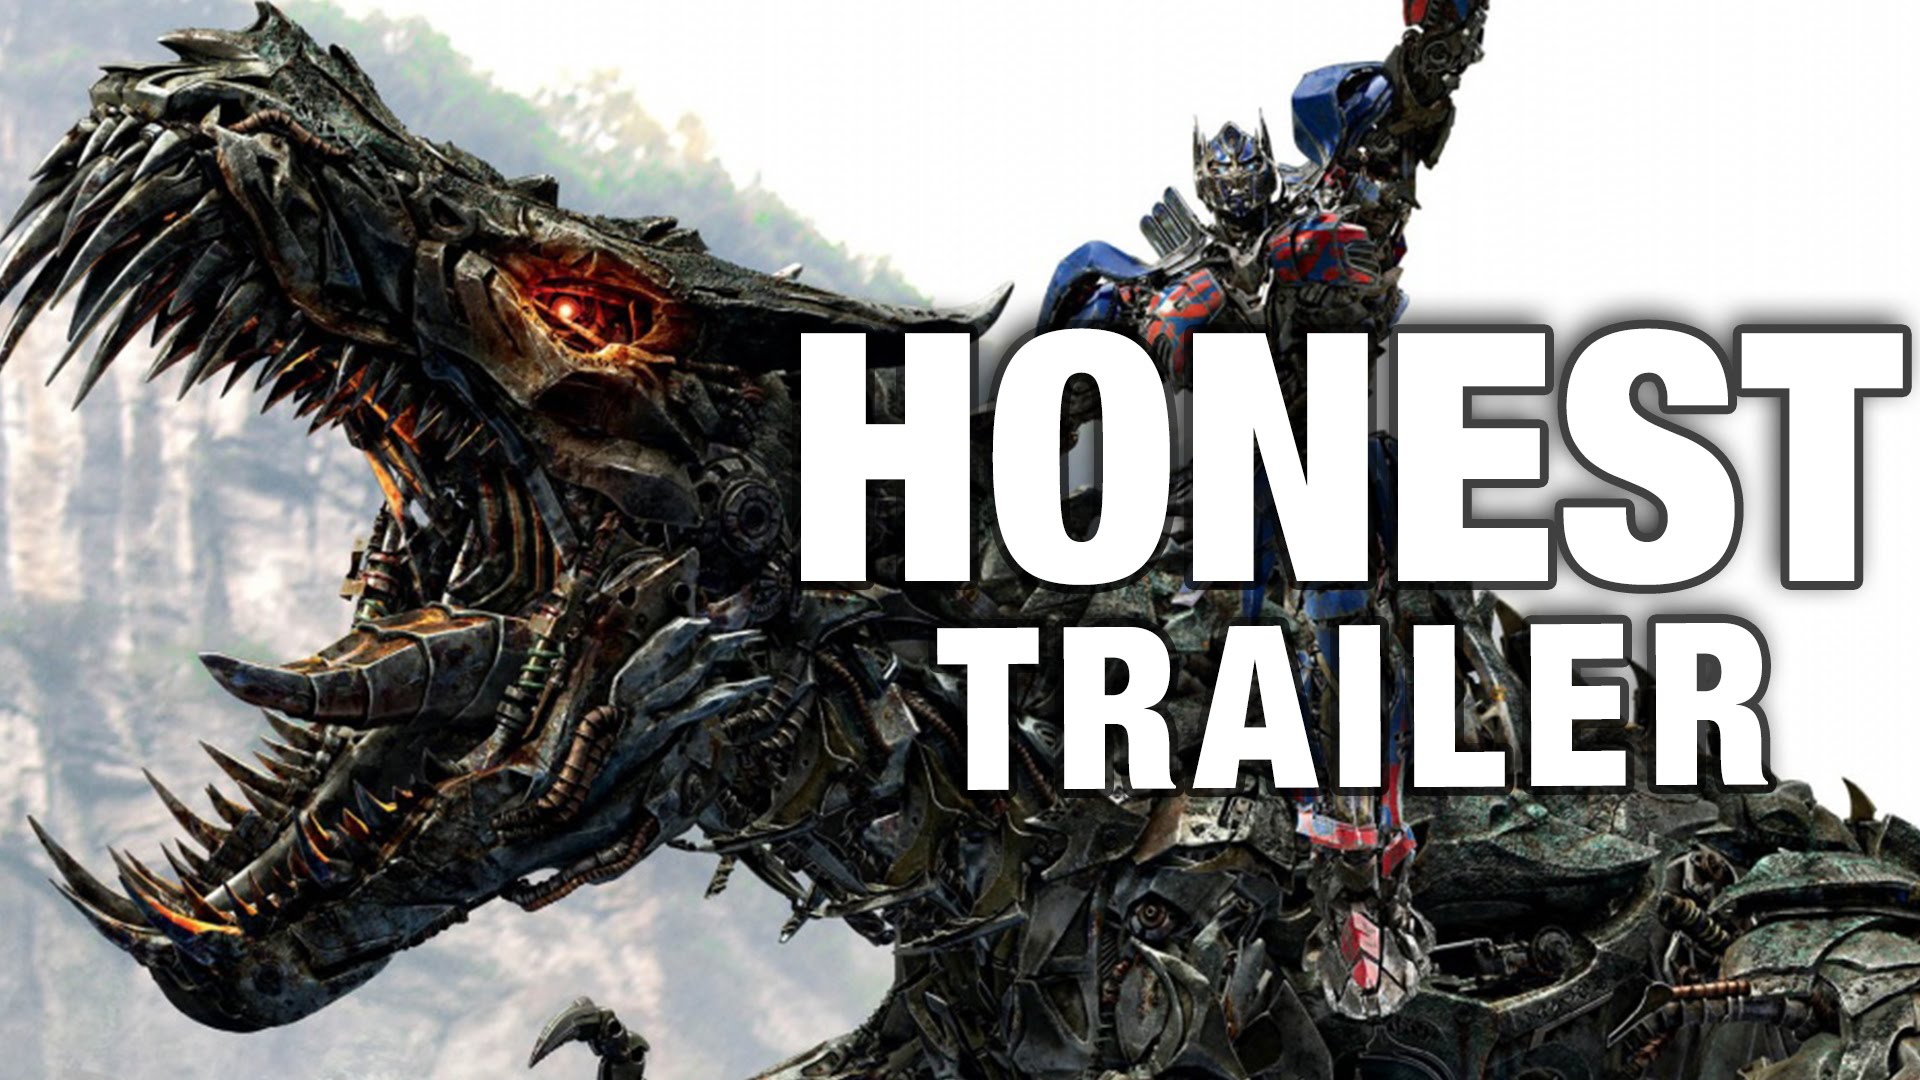 honest trailer - transformers: age of extinction | honest trailers